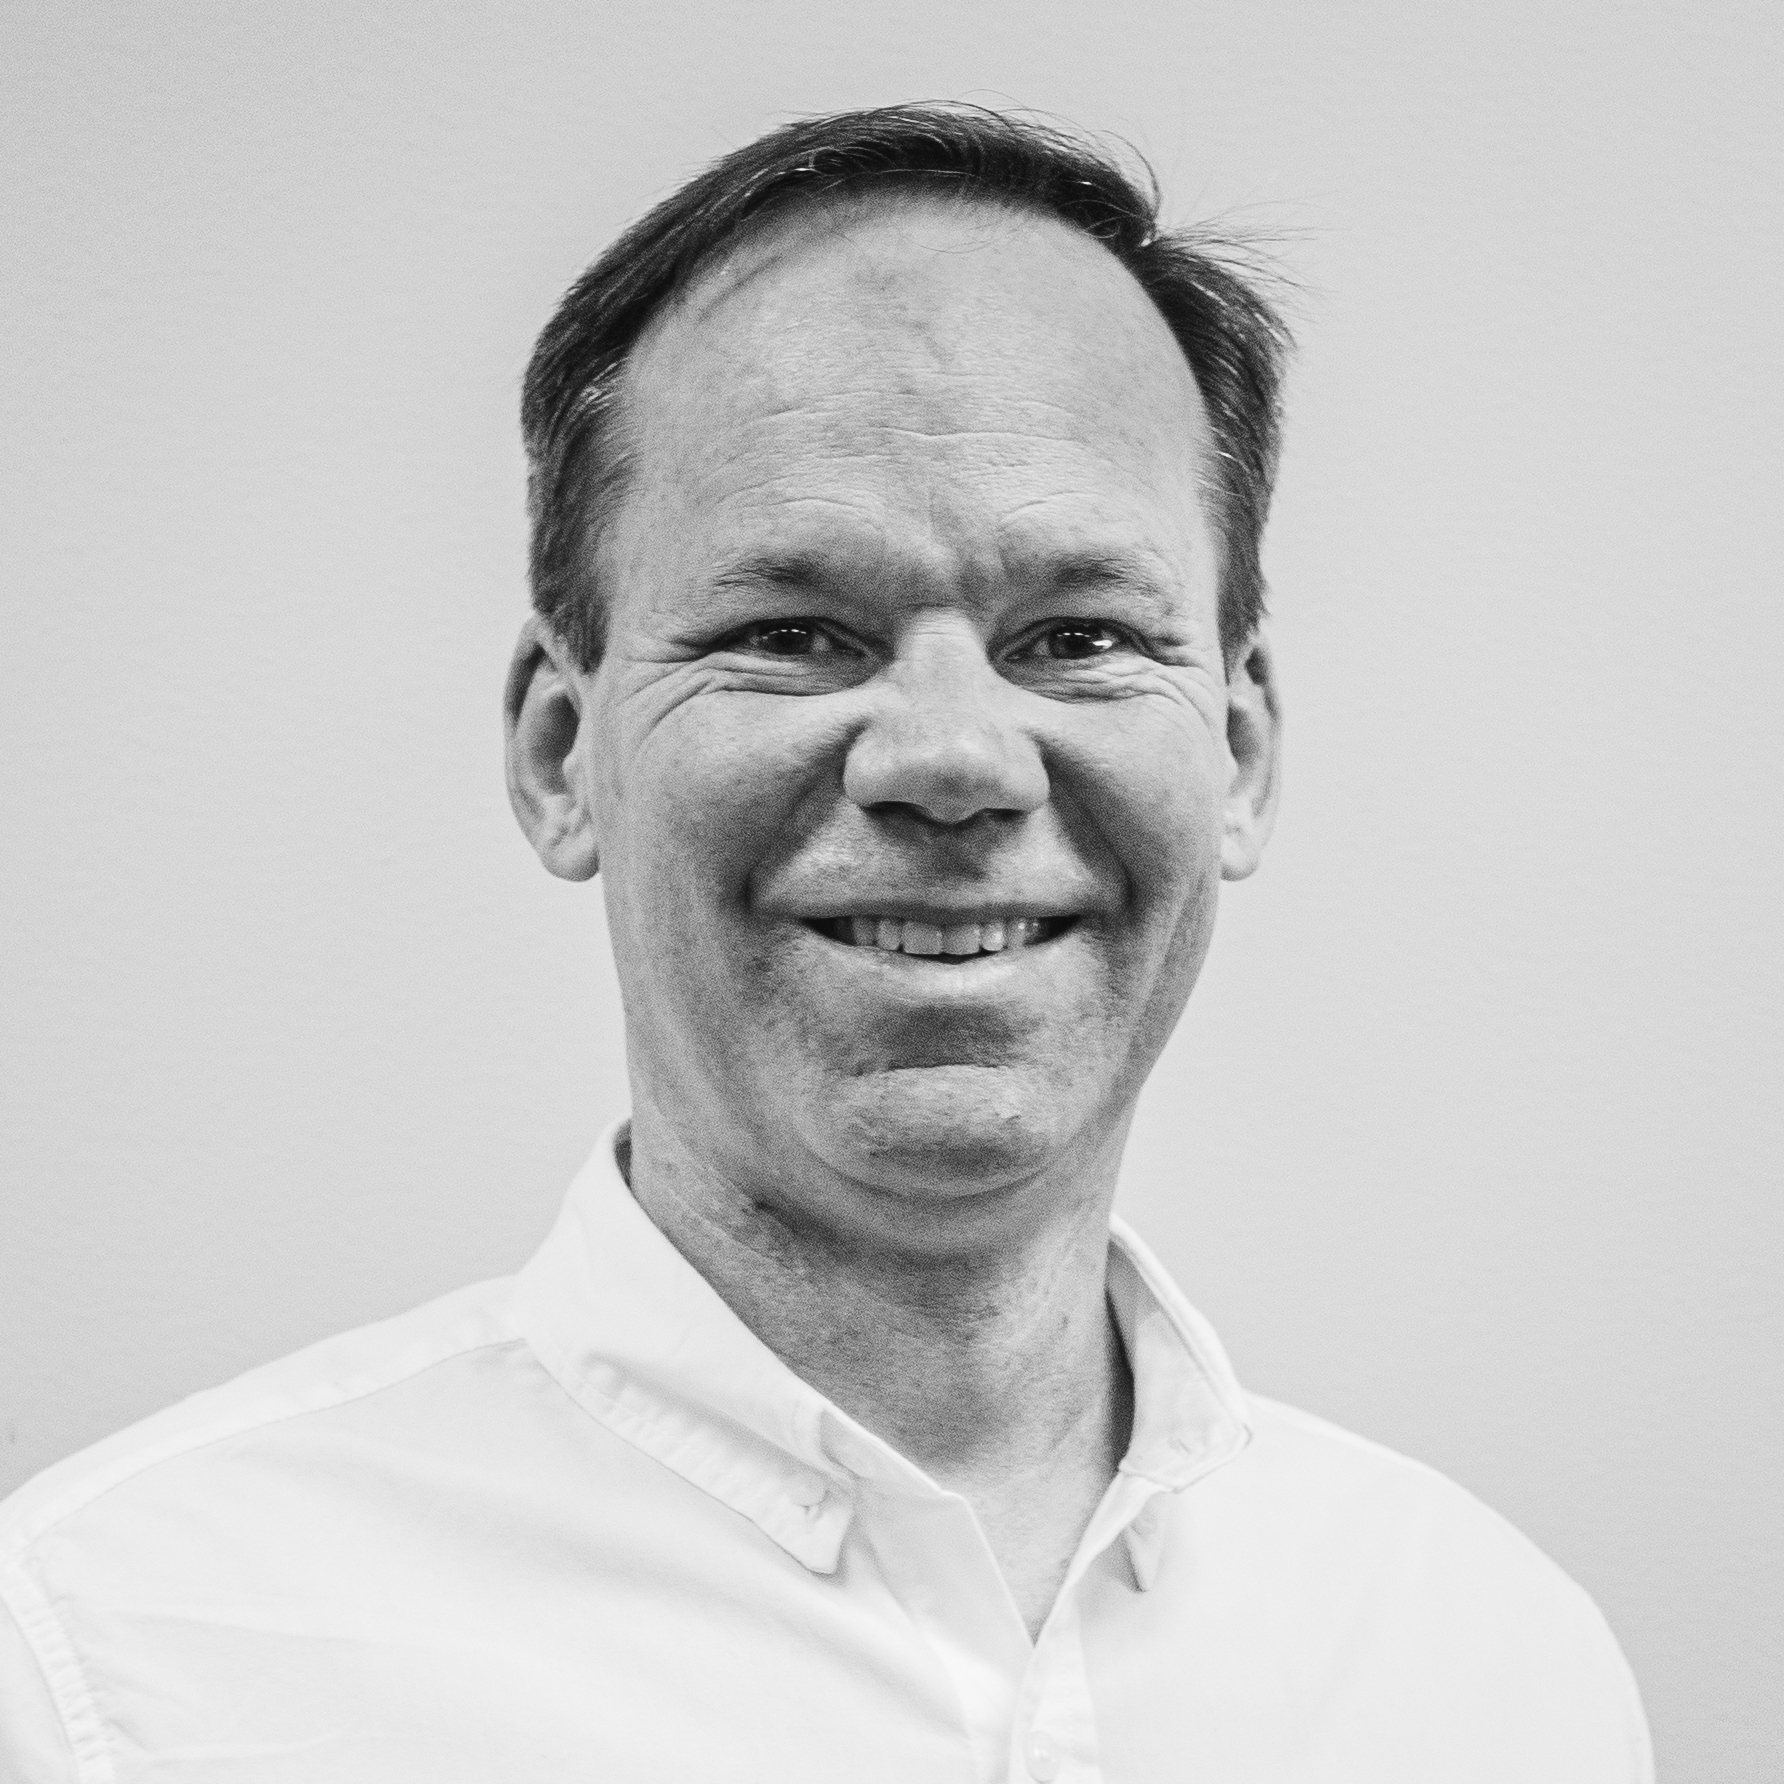 portrait of white middle aged man, edited in black and white